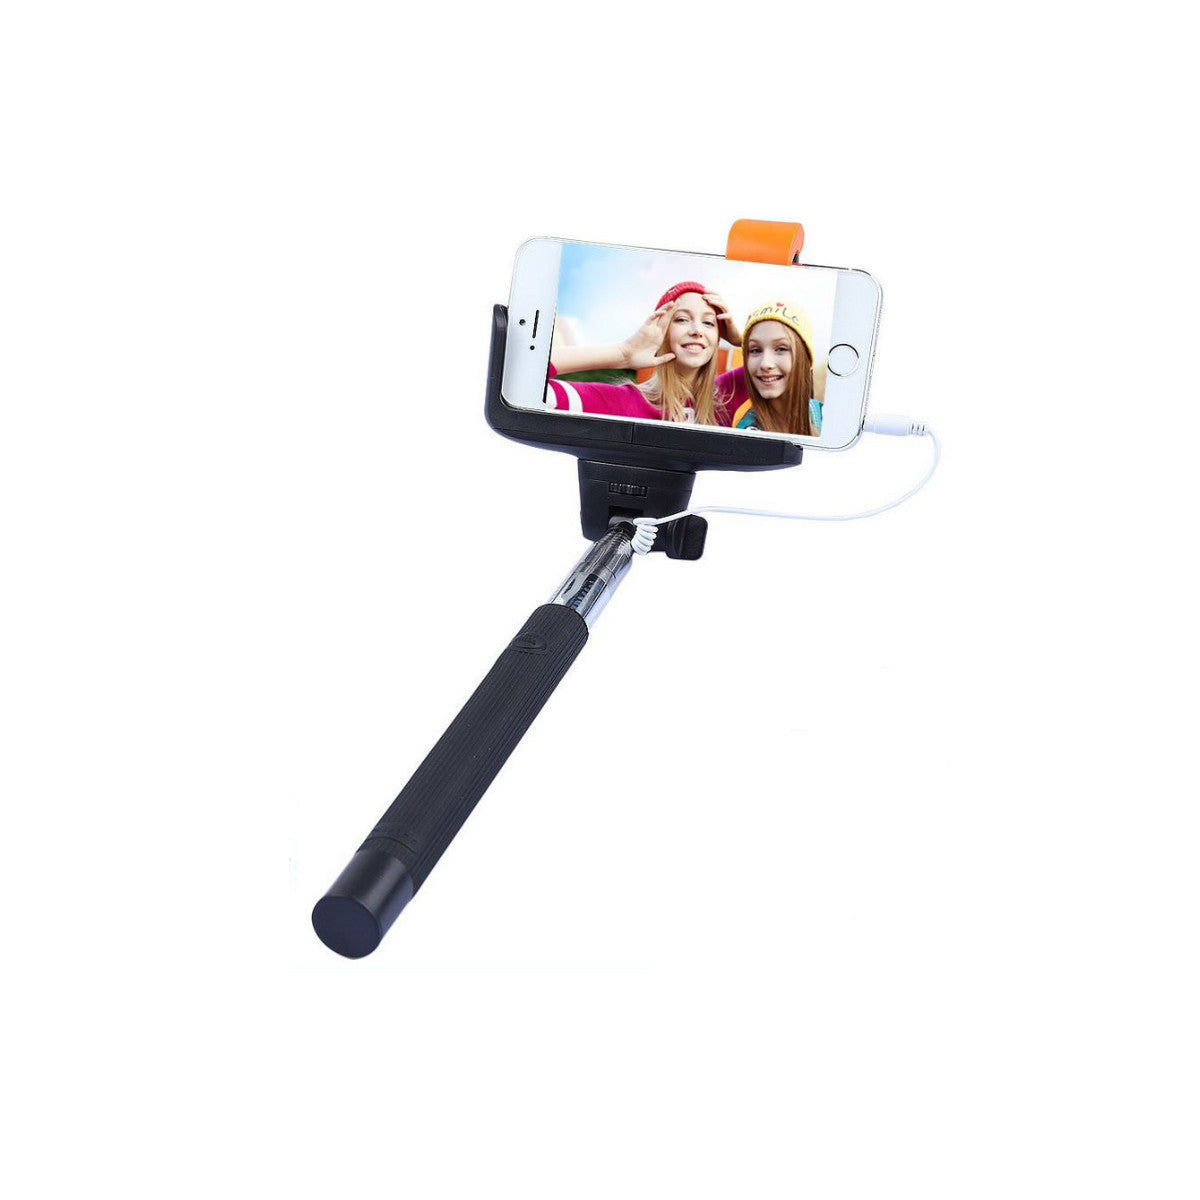 selfie stick monopole with camera button for apple iphone 4 5s 6 plus. Black Bedroom Furniture Sets. Home Design Ideas